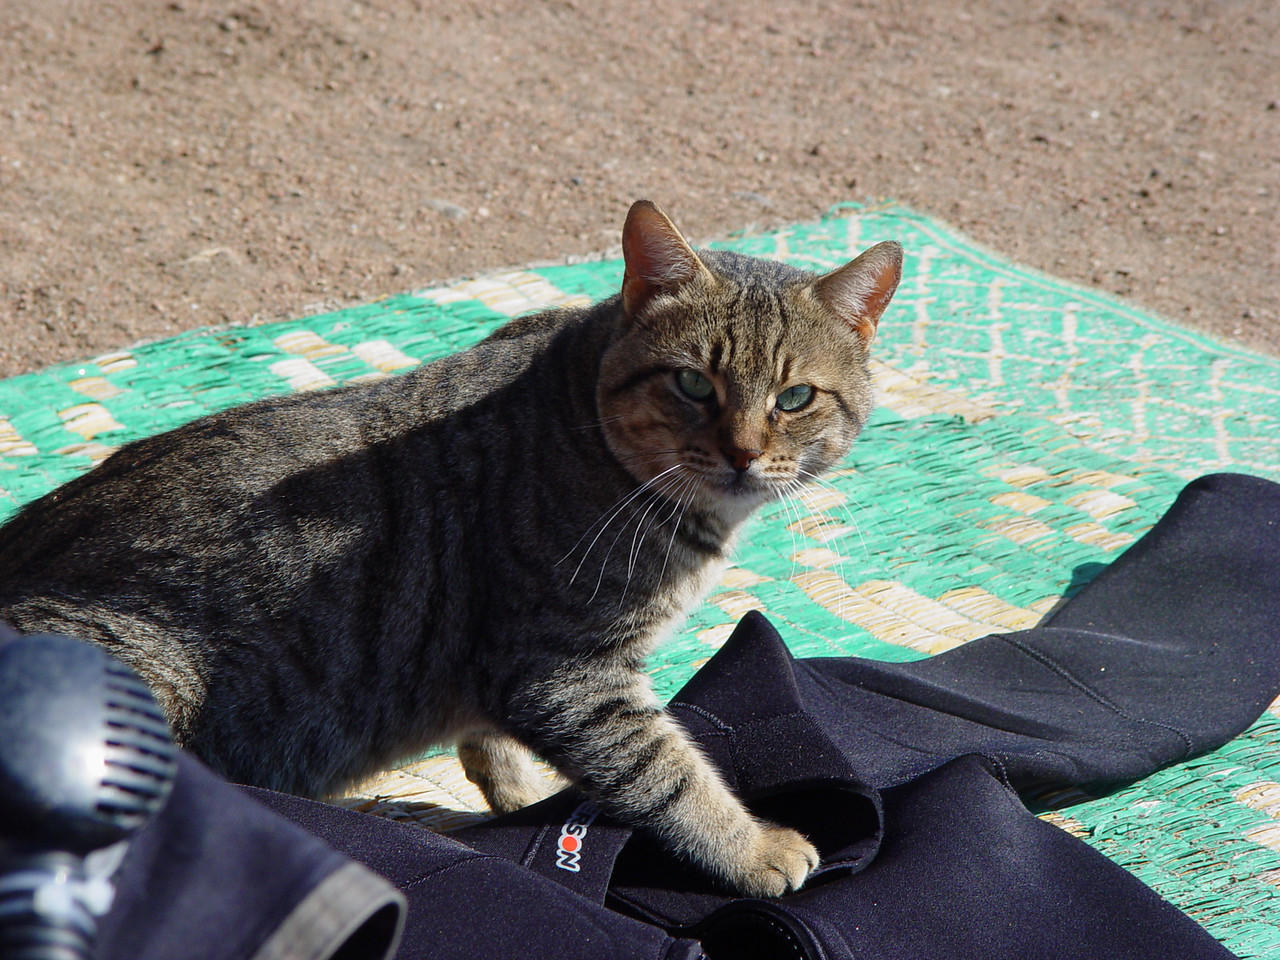 h1) Dahab cat checking out my wetsuit laid out to dry. <br /> Back off Kitty Kat! I don't care if you're worshipped in Egypt. Get those paws off my beloved Henderson Titanium Hyperstretch suit.